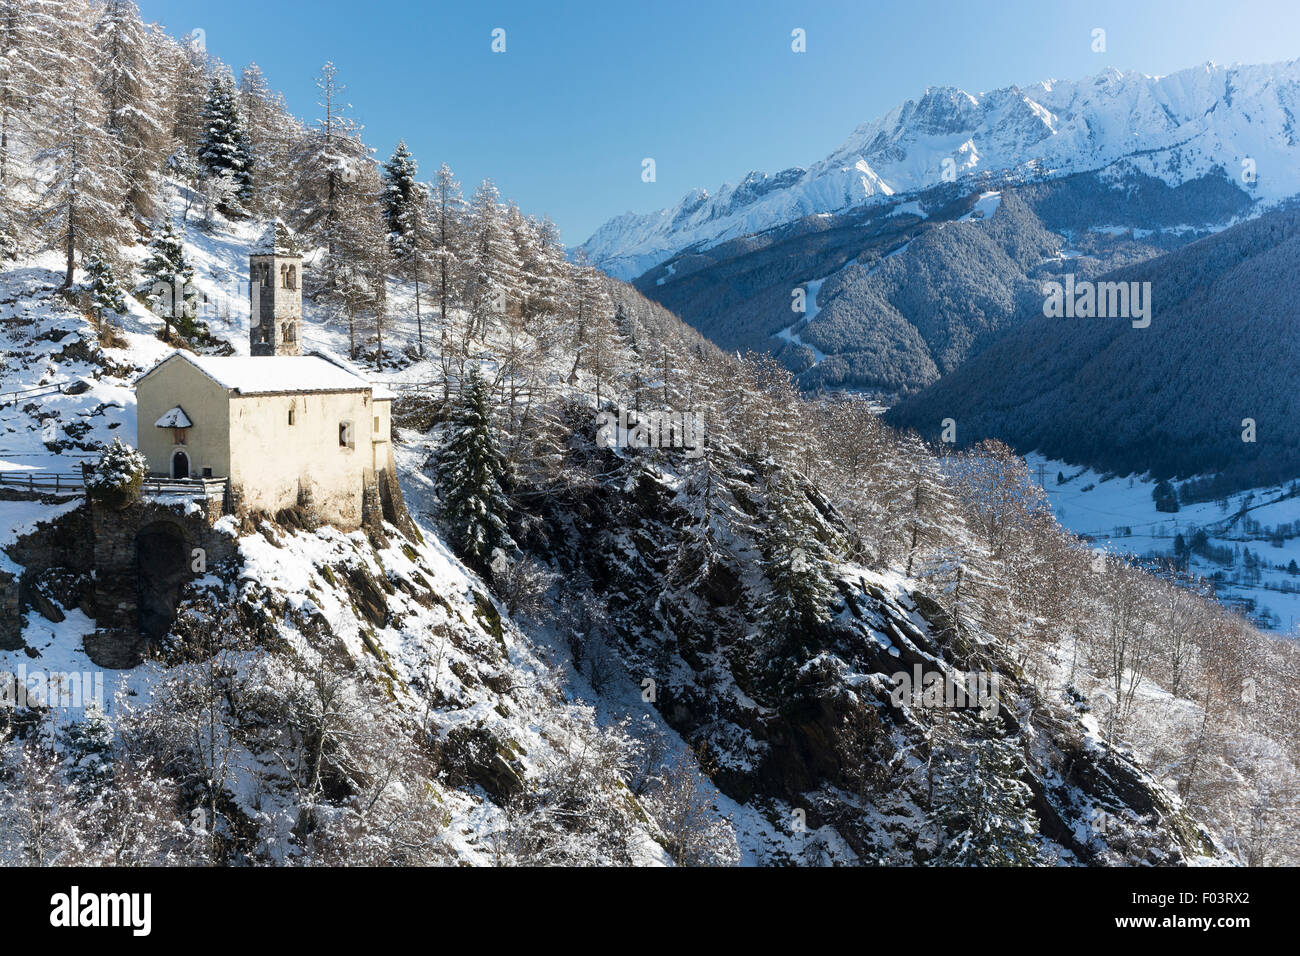 Italy, Lombardy, Retiche Alps, Camonica Valley, the ancient alpine church of San Clemente Stock Photo